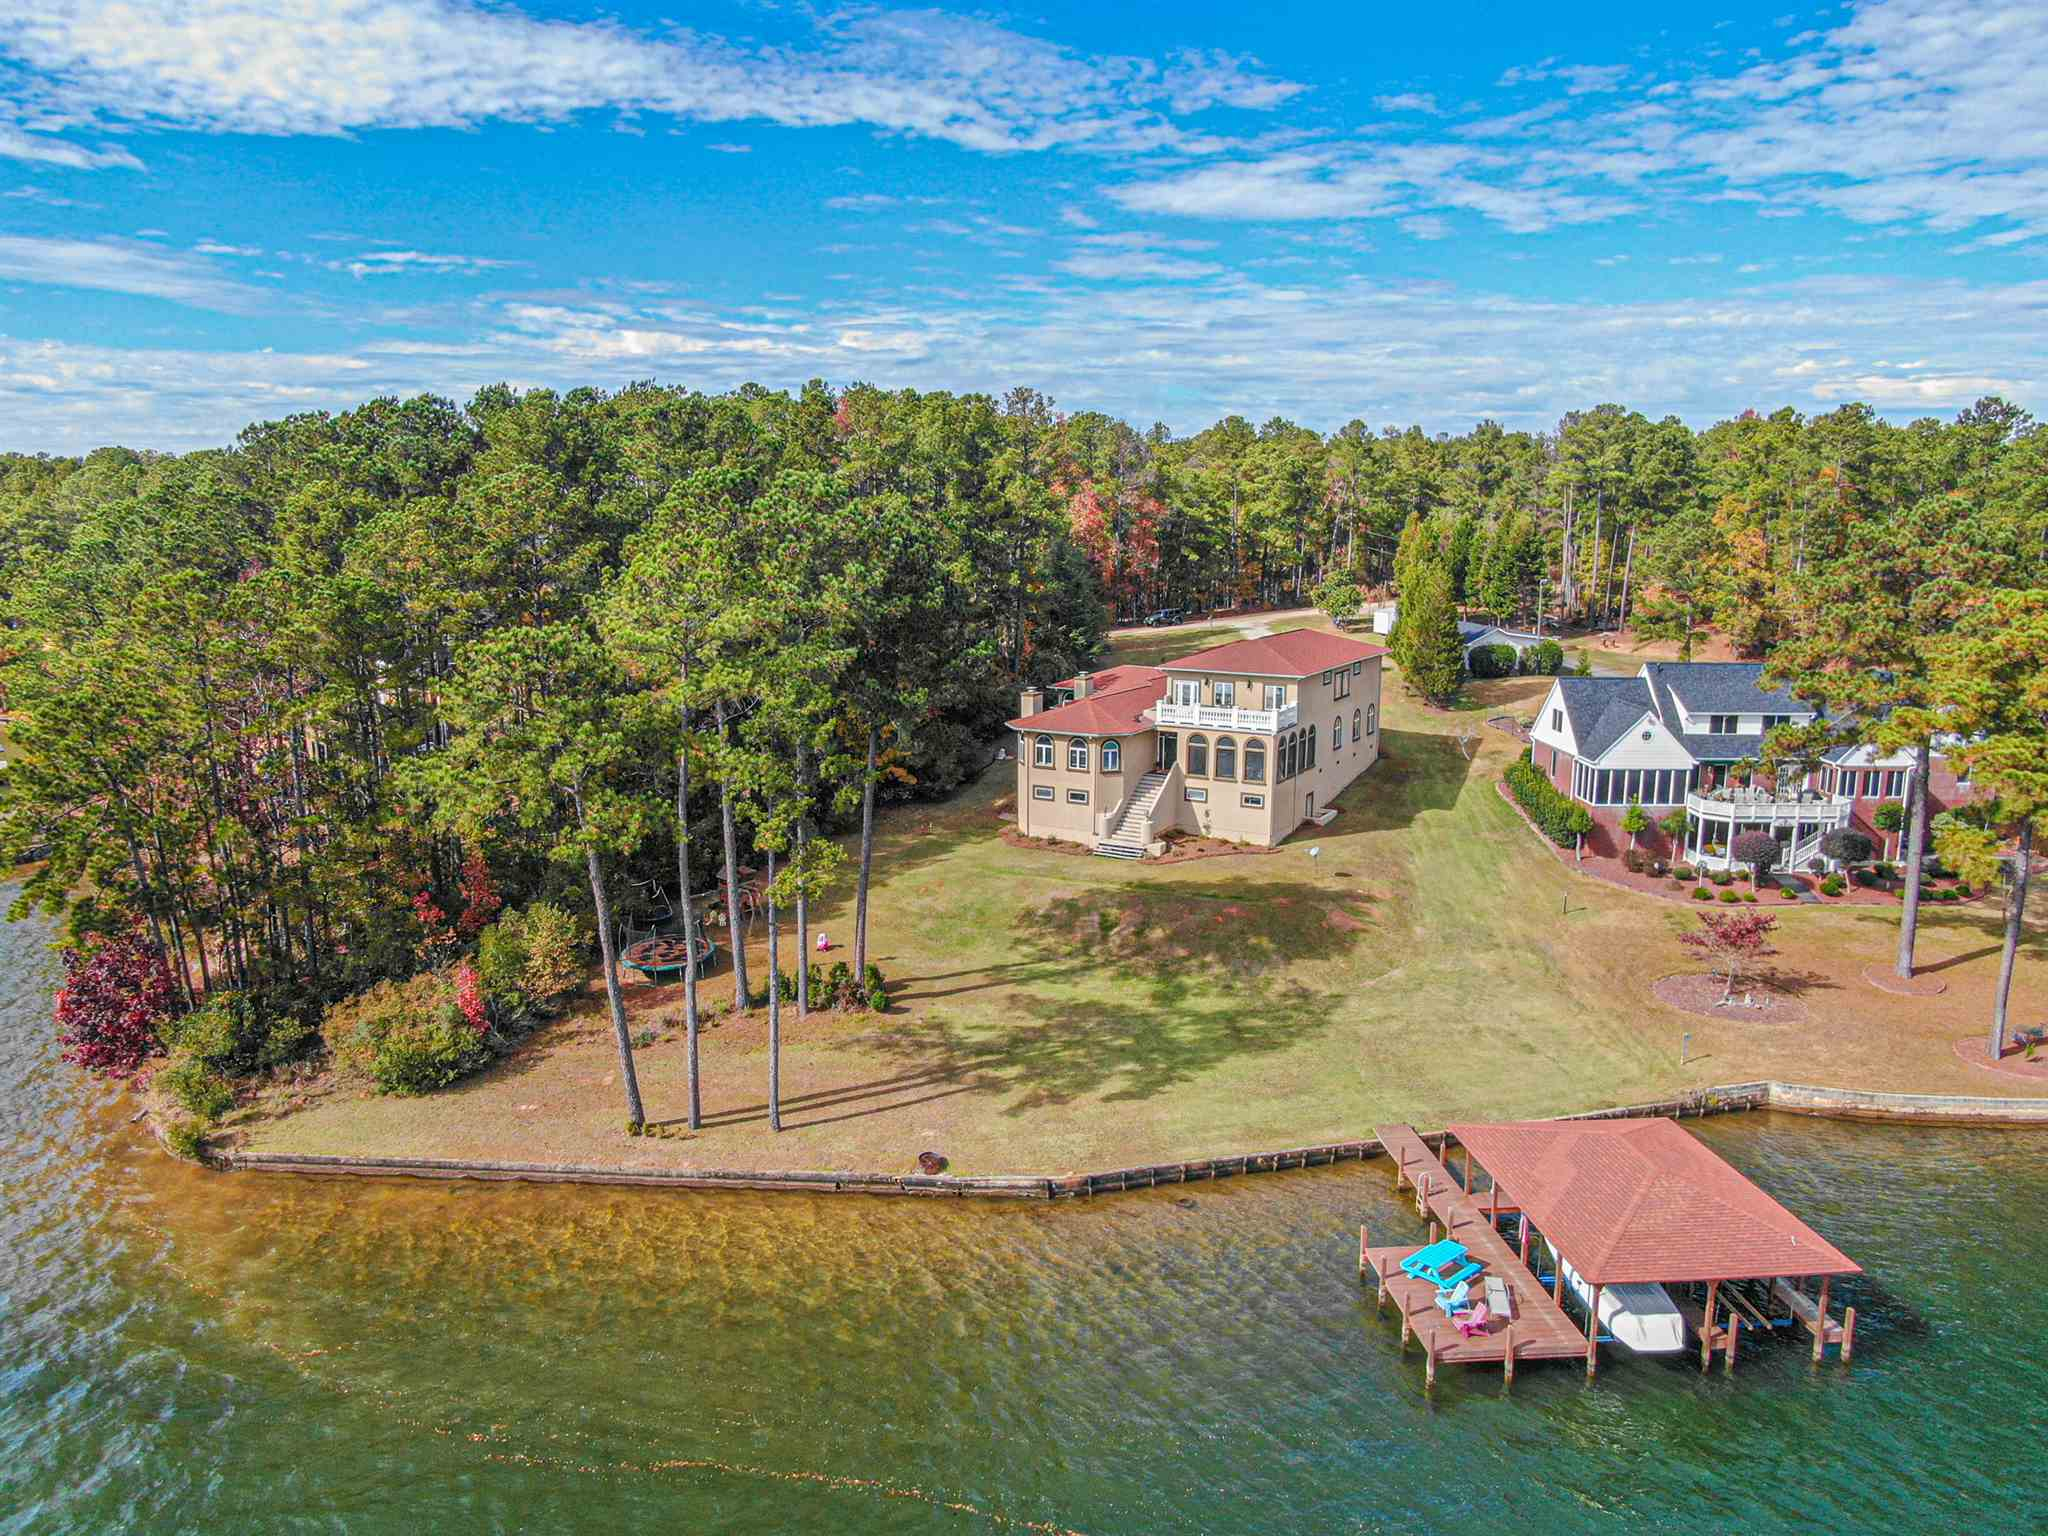 231 CHICORY ROAD, Lake Sinclair, Georgia